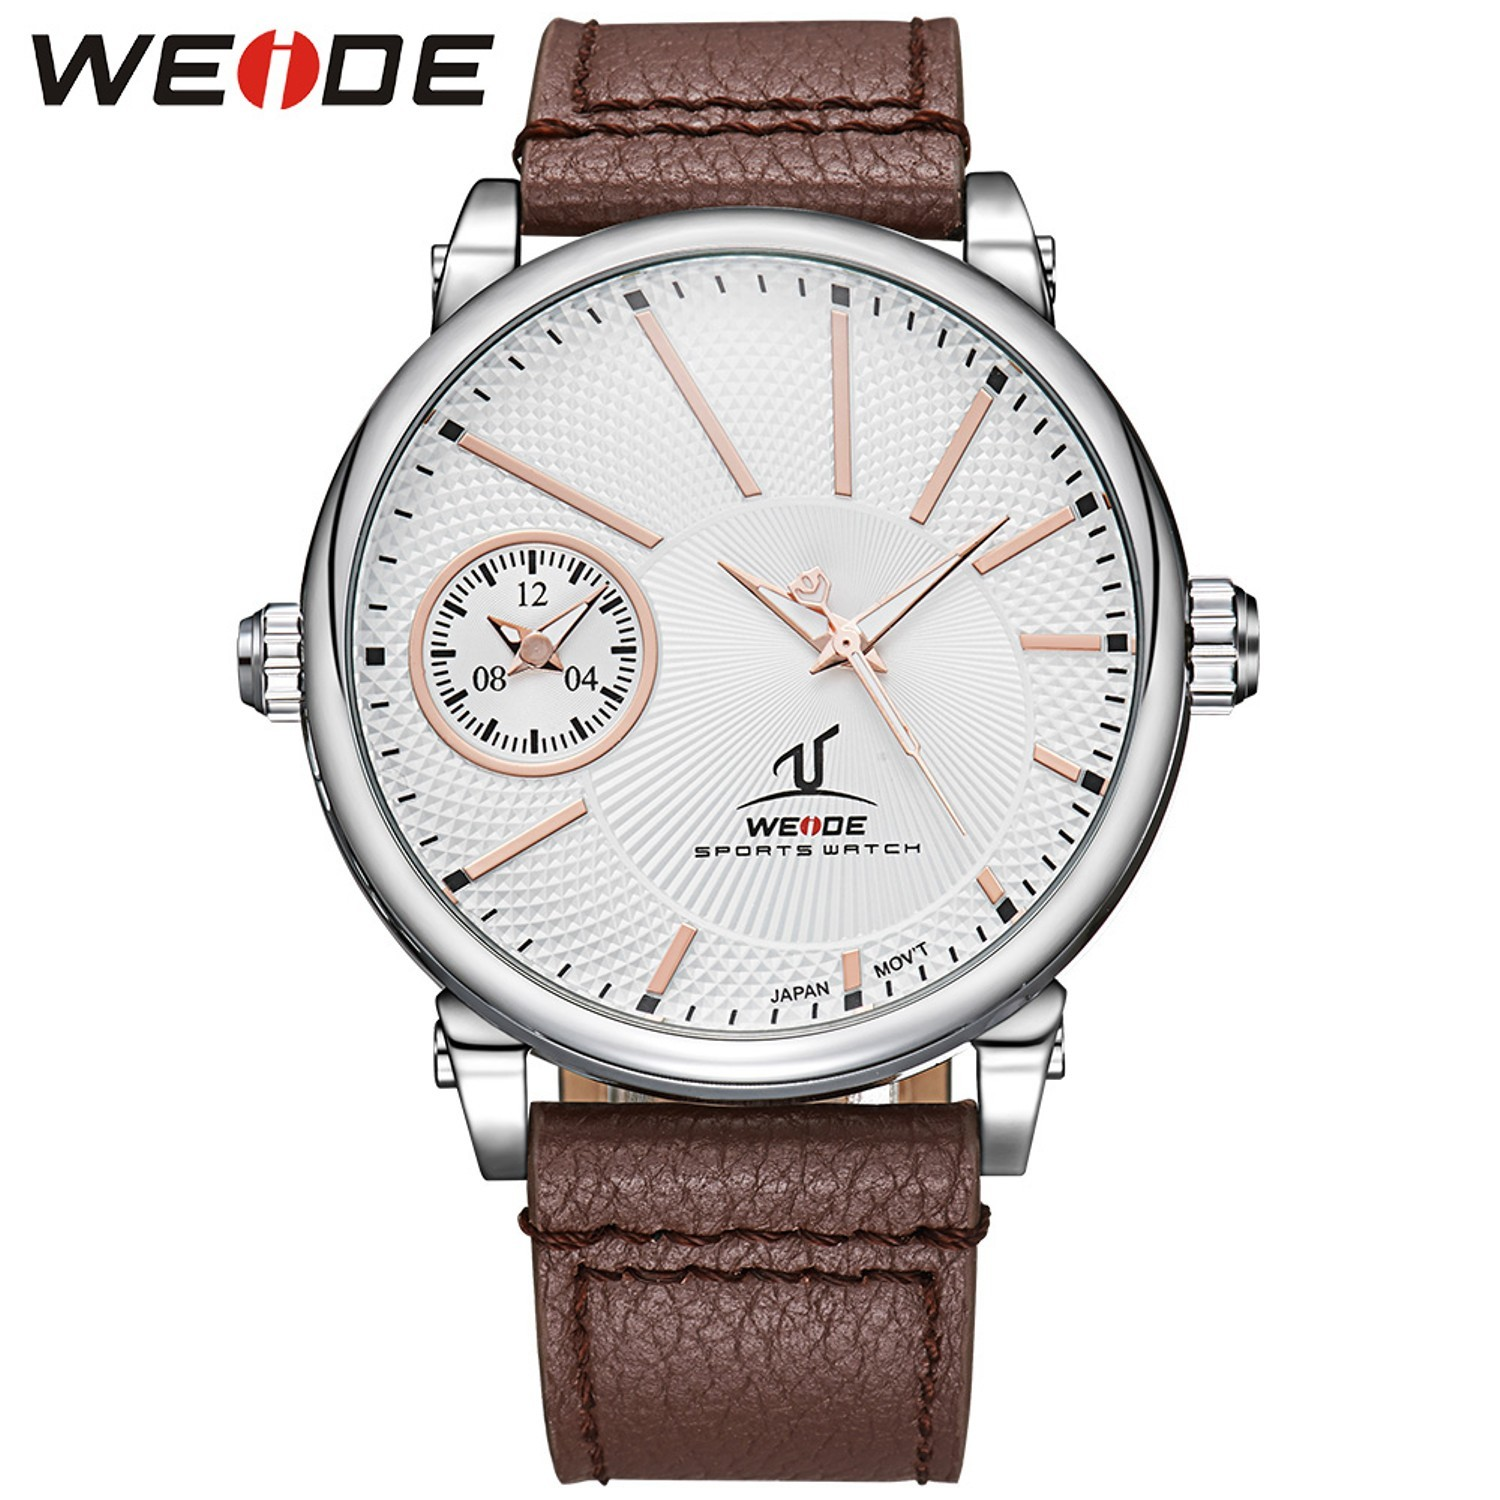 Brand-WEIDE-Watches-Men-Quartz-Silver-White-Dial-Multiple-Time-Zone-Brown-Leather-Strap-3ATM-Water_1500x1500_STRETCH_450.jpg